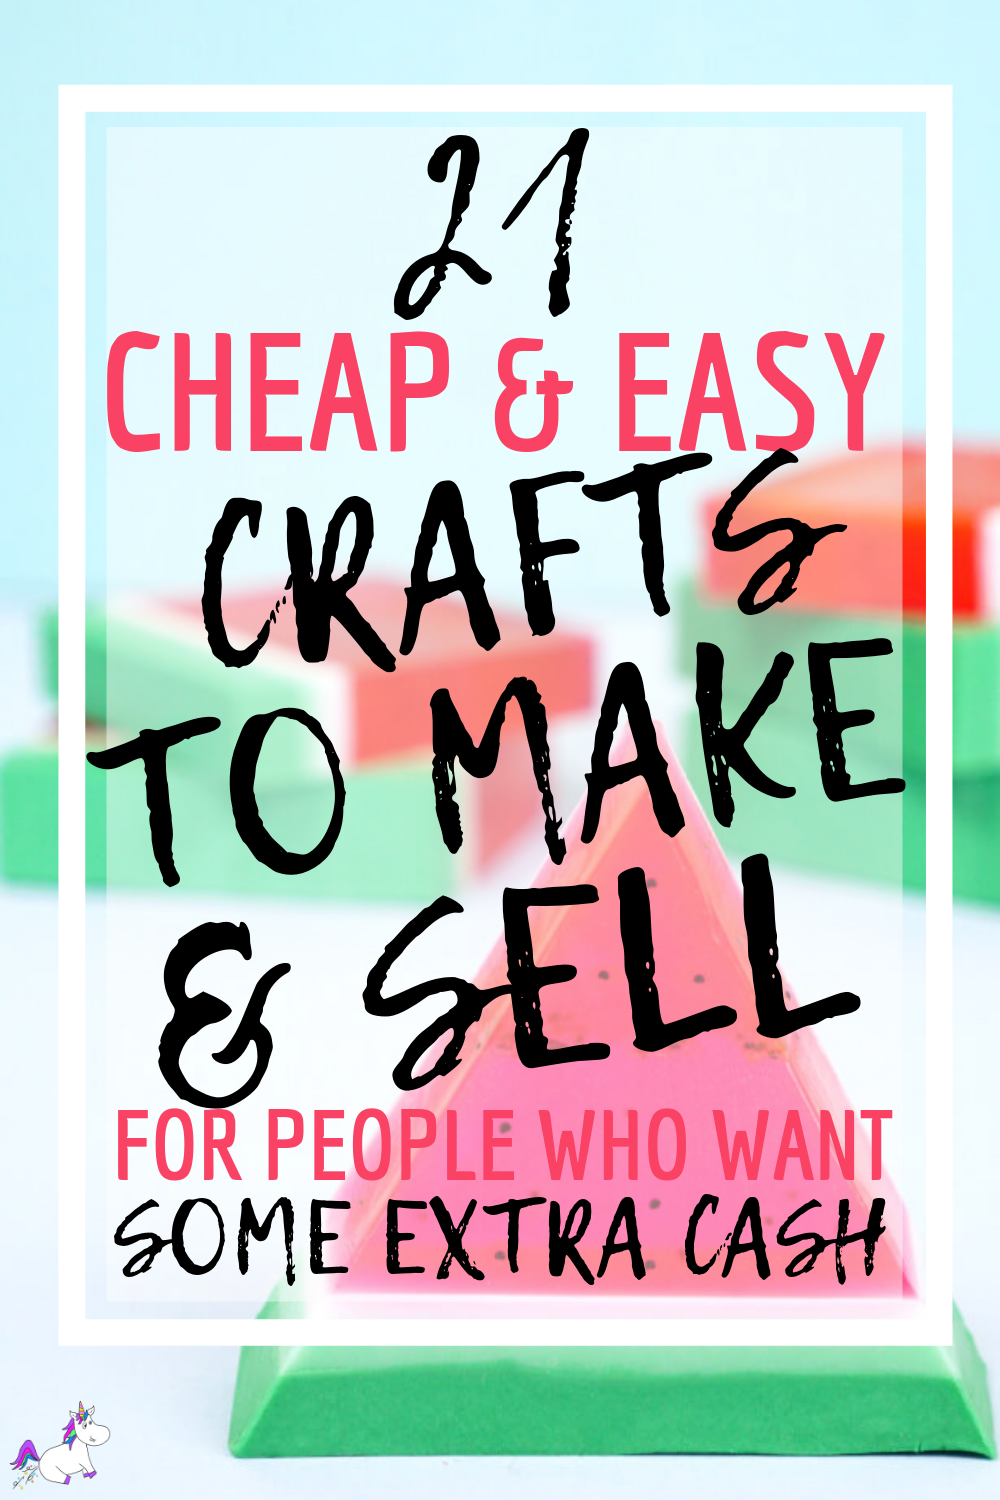 21 Brilliant Crafts To Make and Sell For People Who Like Extra Cash! #themummyfront